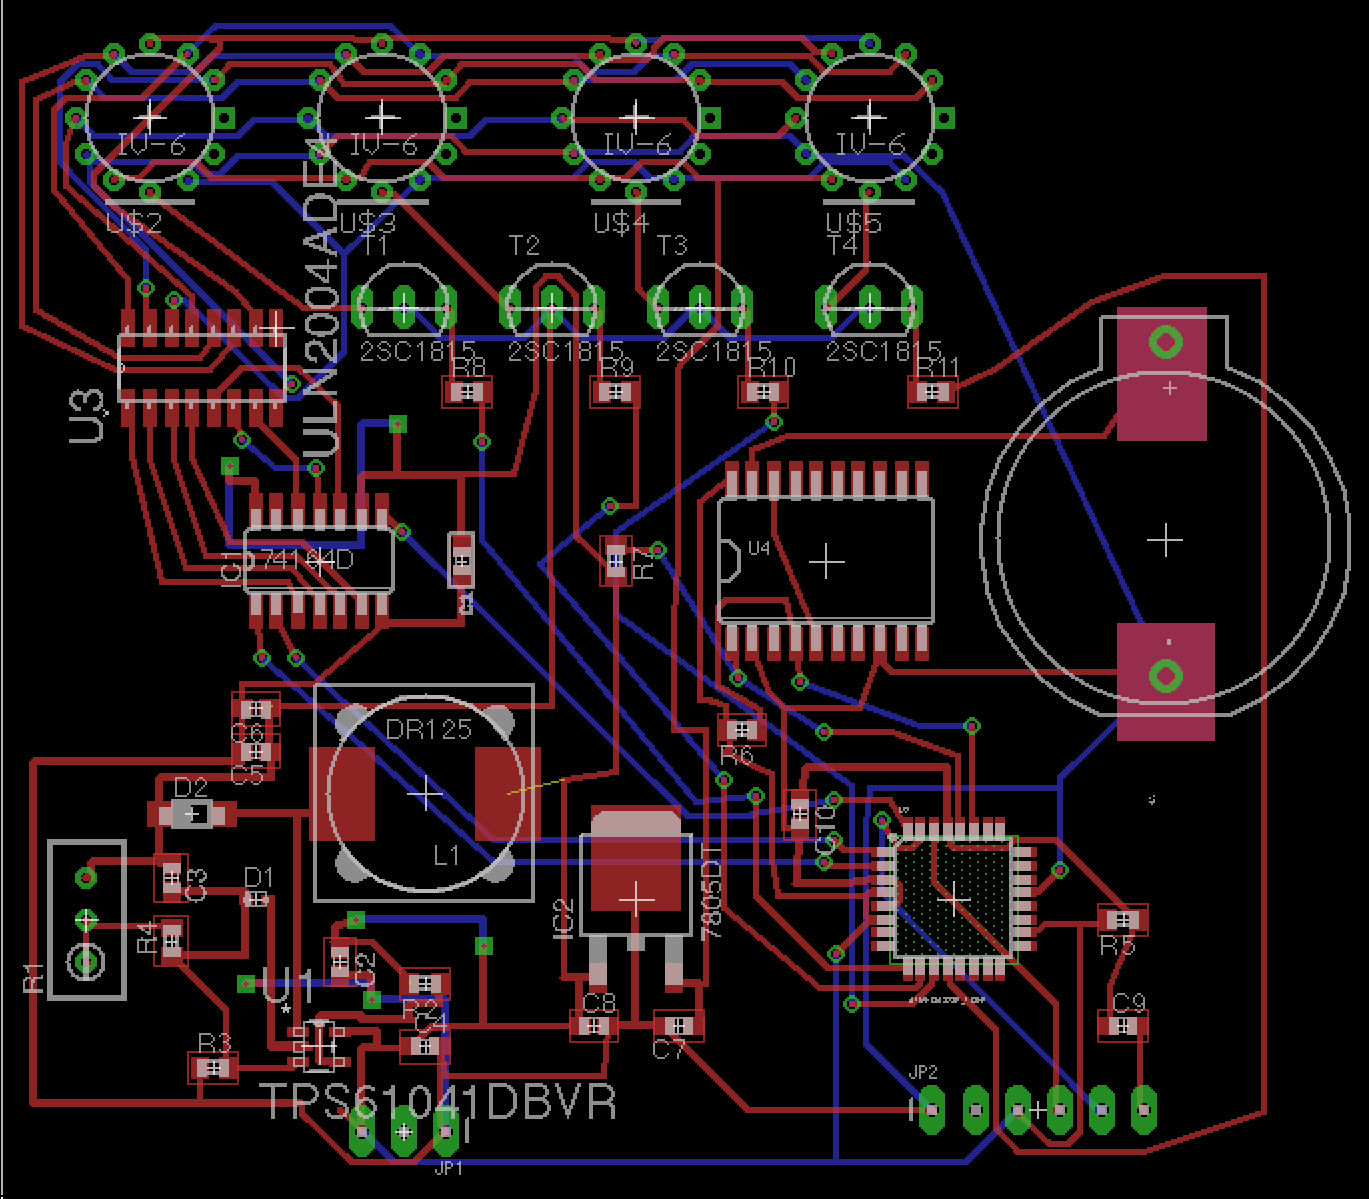 Russian Vfd Clock Images Tps61040 Boost Converter Schematic The Pinout Of Iv 3a Is Compatible With 6 Nixie Not Voltage But Just Pin And Also Lmr62421